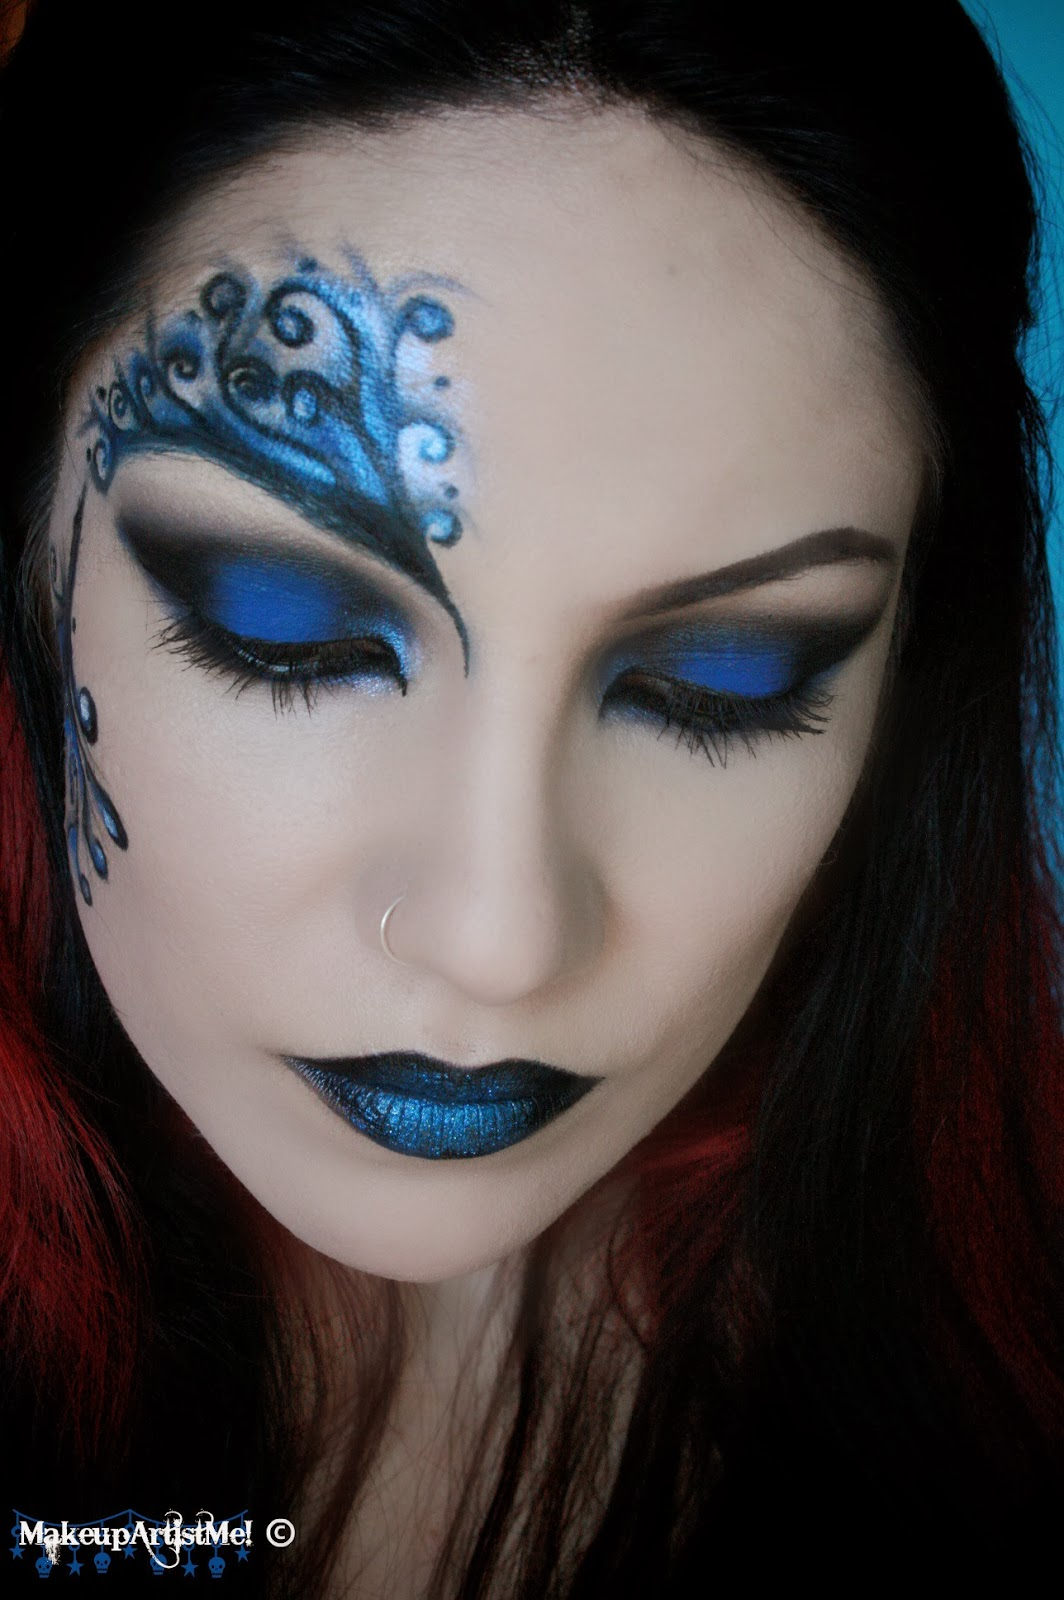 Make Up Lesson For Beginners: Make-up Artist Me!: Blue Secret- Blue Masquerade Makeup